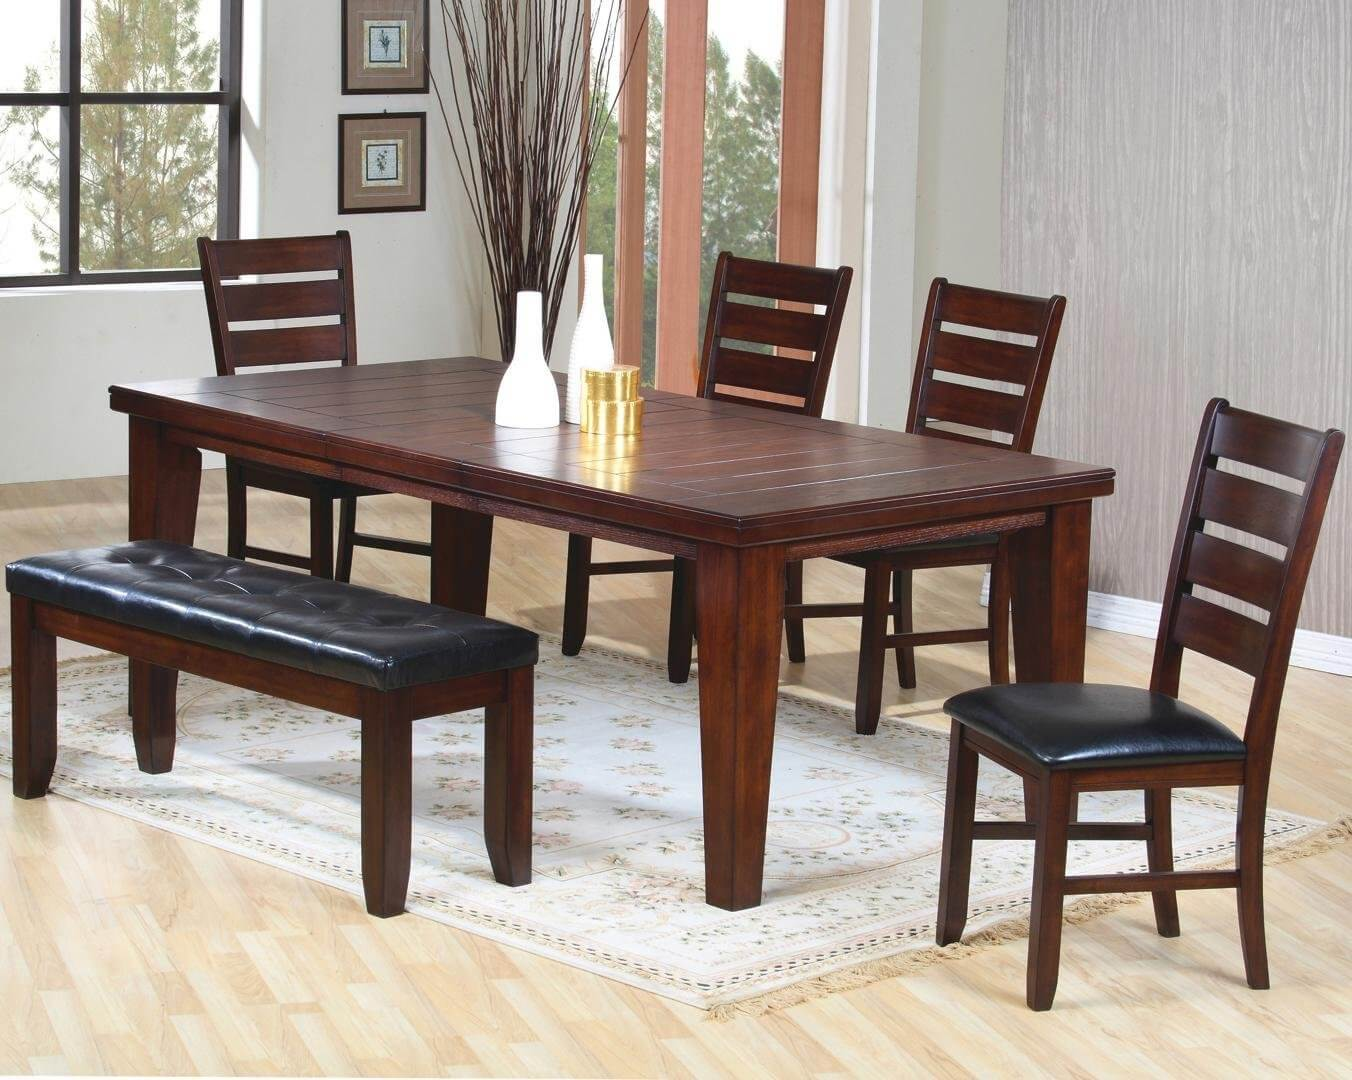 Small kitchen table set - Solid Wood Six Piece Dining Set With Cushioned Bench The Finish Is Dark Oak Wood